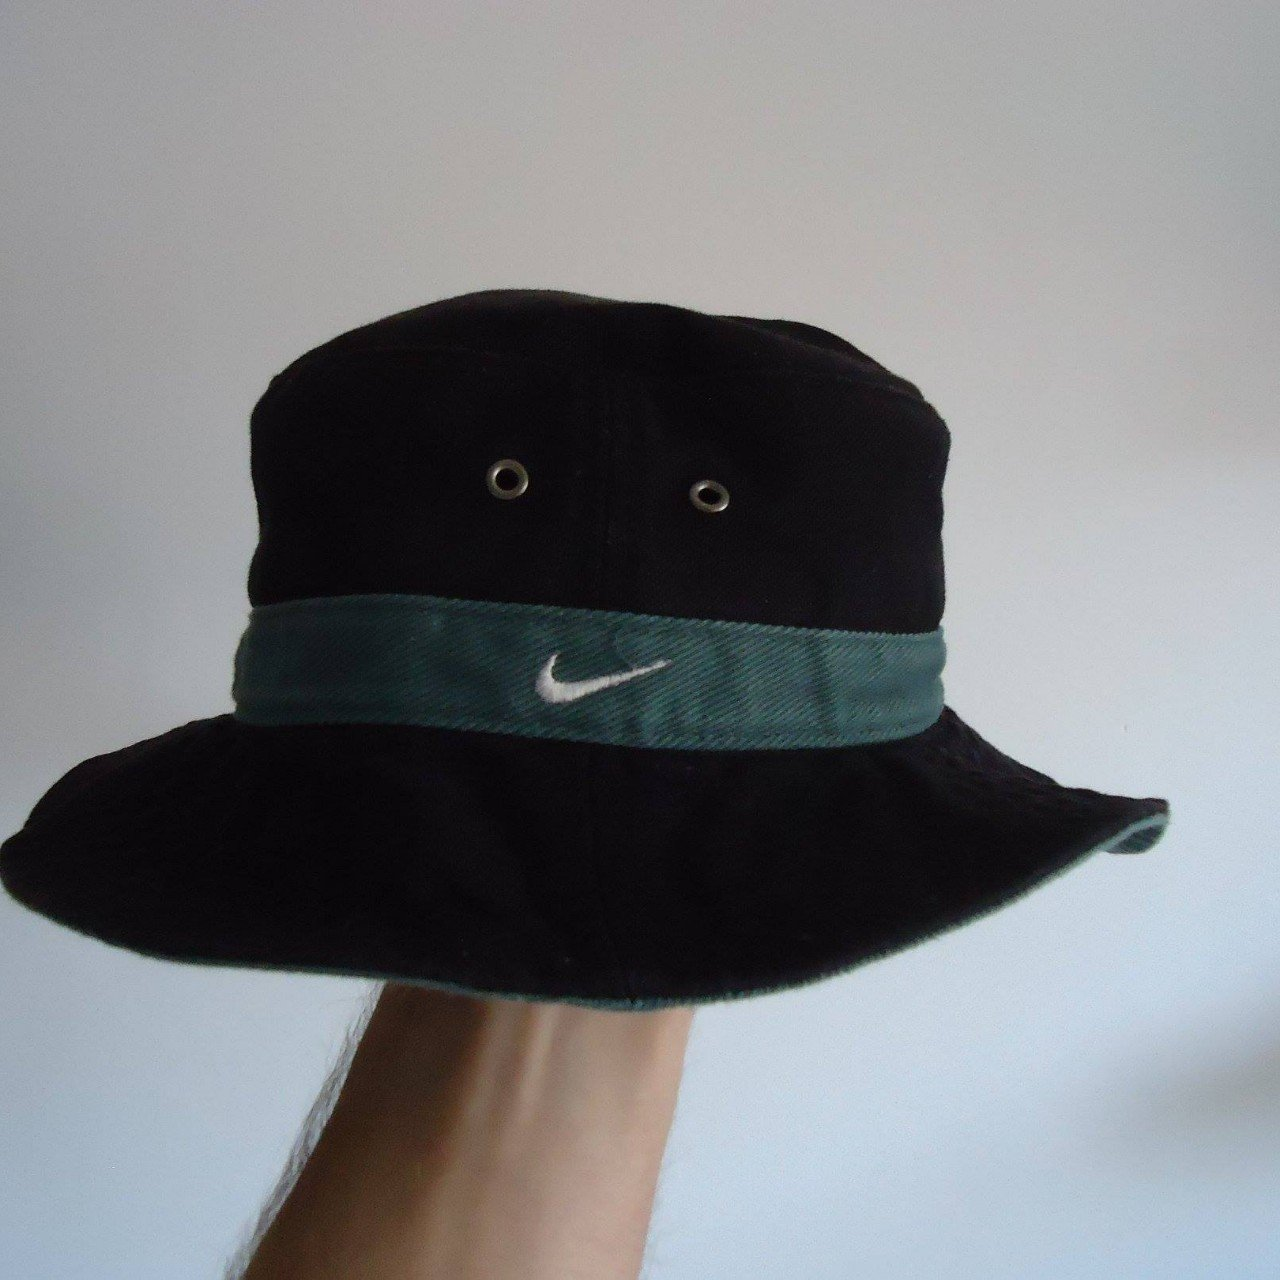 VERY RARE Nike Bucket Hat Black and Green Size Small (this a - Depop 704347483b1